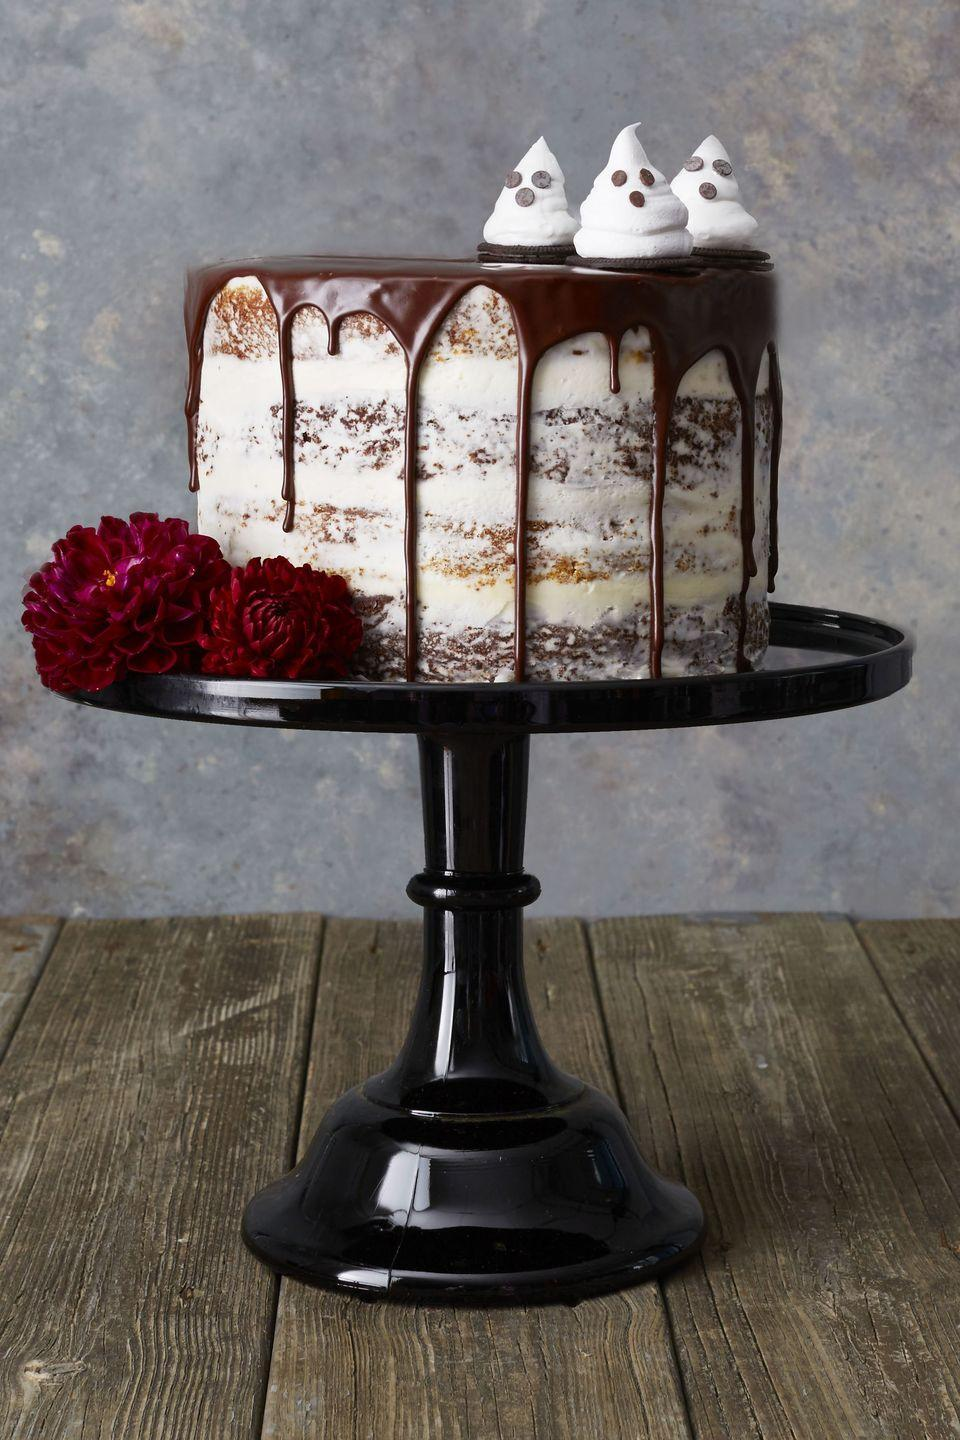 """<p>Garnish this spicy chocolate cake with sugar ghosts and a dripping layer of rich chocolate for the most decadent dessert. </p><p><em><a href=""""https://www.goodhousekeeping.com/food-recipes/dessert/a46068/pumpkin-devils-food-layer-cake-recipe/"""" rel=""""nofollow noopener"""" target=""""_blank"""" data-ylk=""""slk:G"""" class=""""link rapid-noclick-resp"""">G</a></em><em><a href=""""https://www.goodhousekeeping.com/food-recipes/dessert/a46068/pumpkin-devils-food-layer-cake-recipe/"""" rel=""""nofollow noopener"""" target=""""_blank"""" data-ylk=""""slk:et the recipe for Pumpkin and Devil's Food Layer Cake »"""" class=""""link rapid-noclick-resp"""">et the recipe for Pumpkin and Devil's Food Layer Cake »</a></em></p>"""